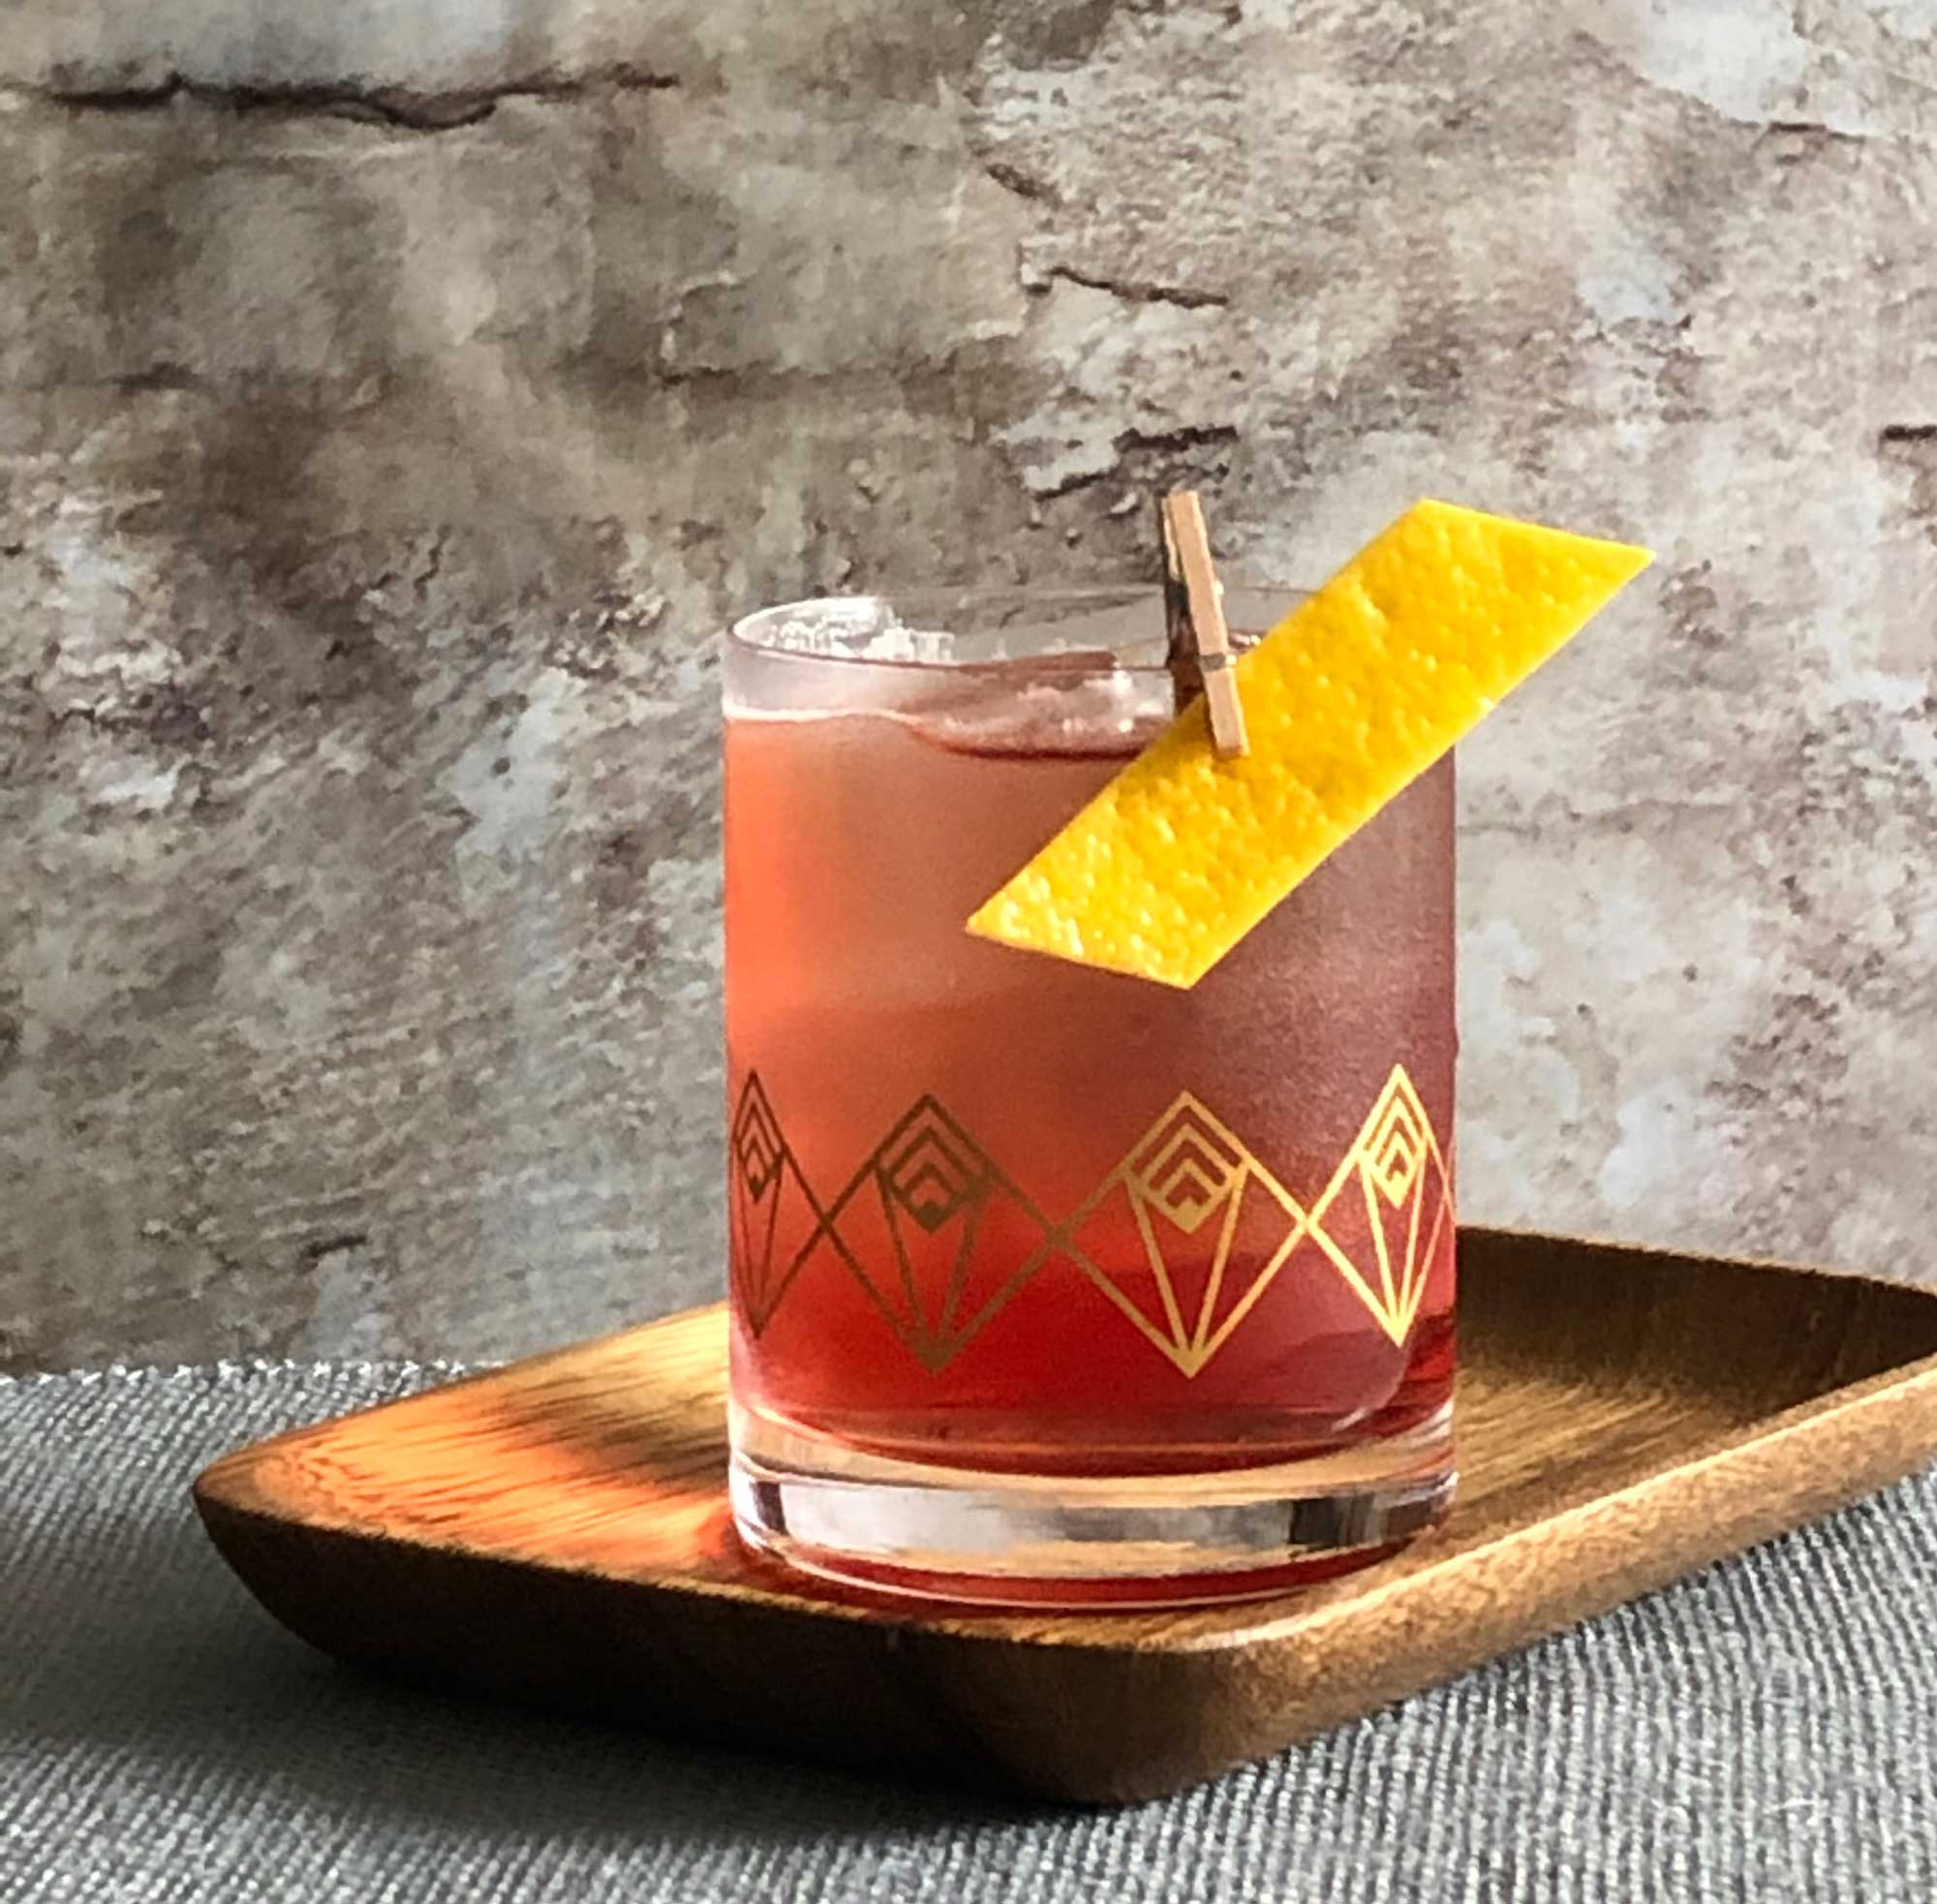 An example of the Refreshed Rosa, the mixed drink (cocktail) featuring Cocchi Americano Rosa, Dolin Blanc Vermouth de Chambéry, and india pale ale; photo by Lee Edwards